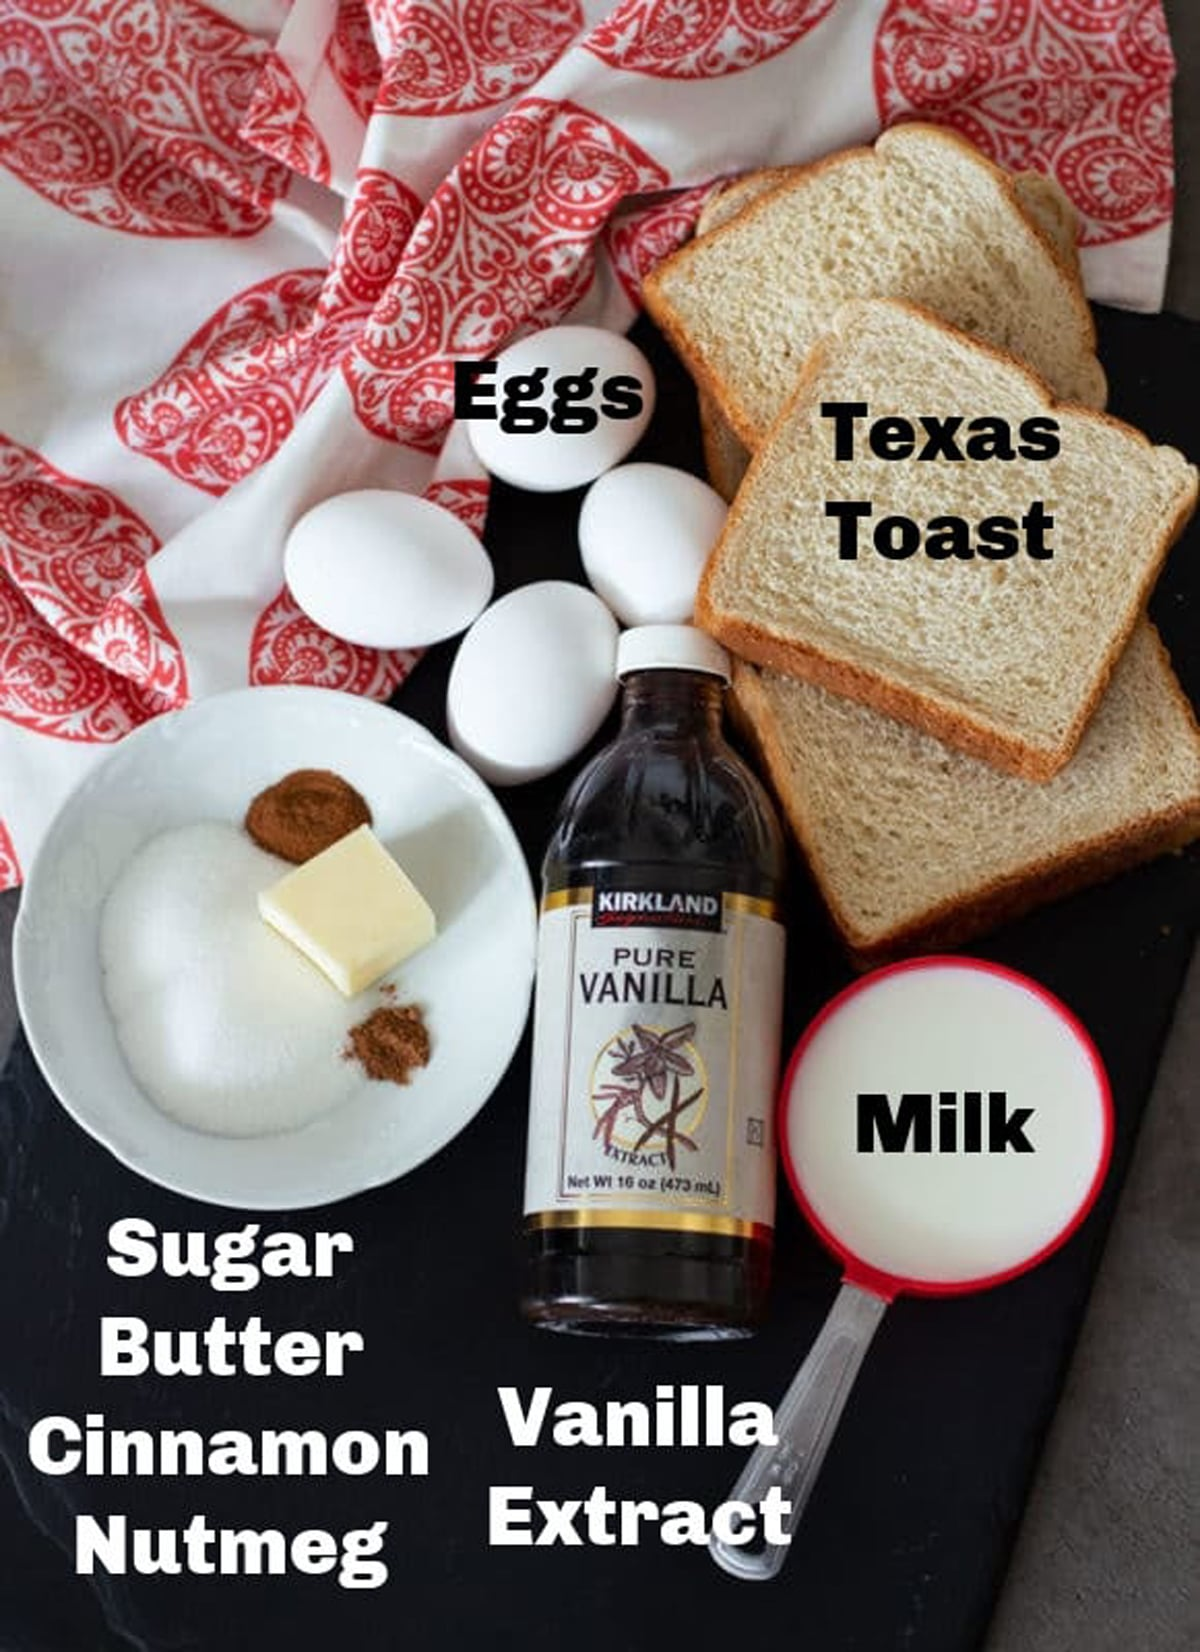 Texas toast, eggs, spices, milk, and vanilla extract on counter.